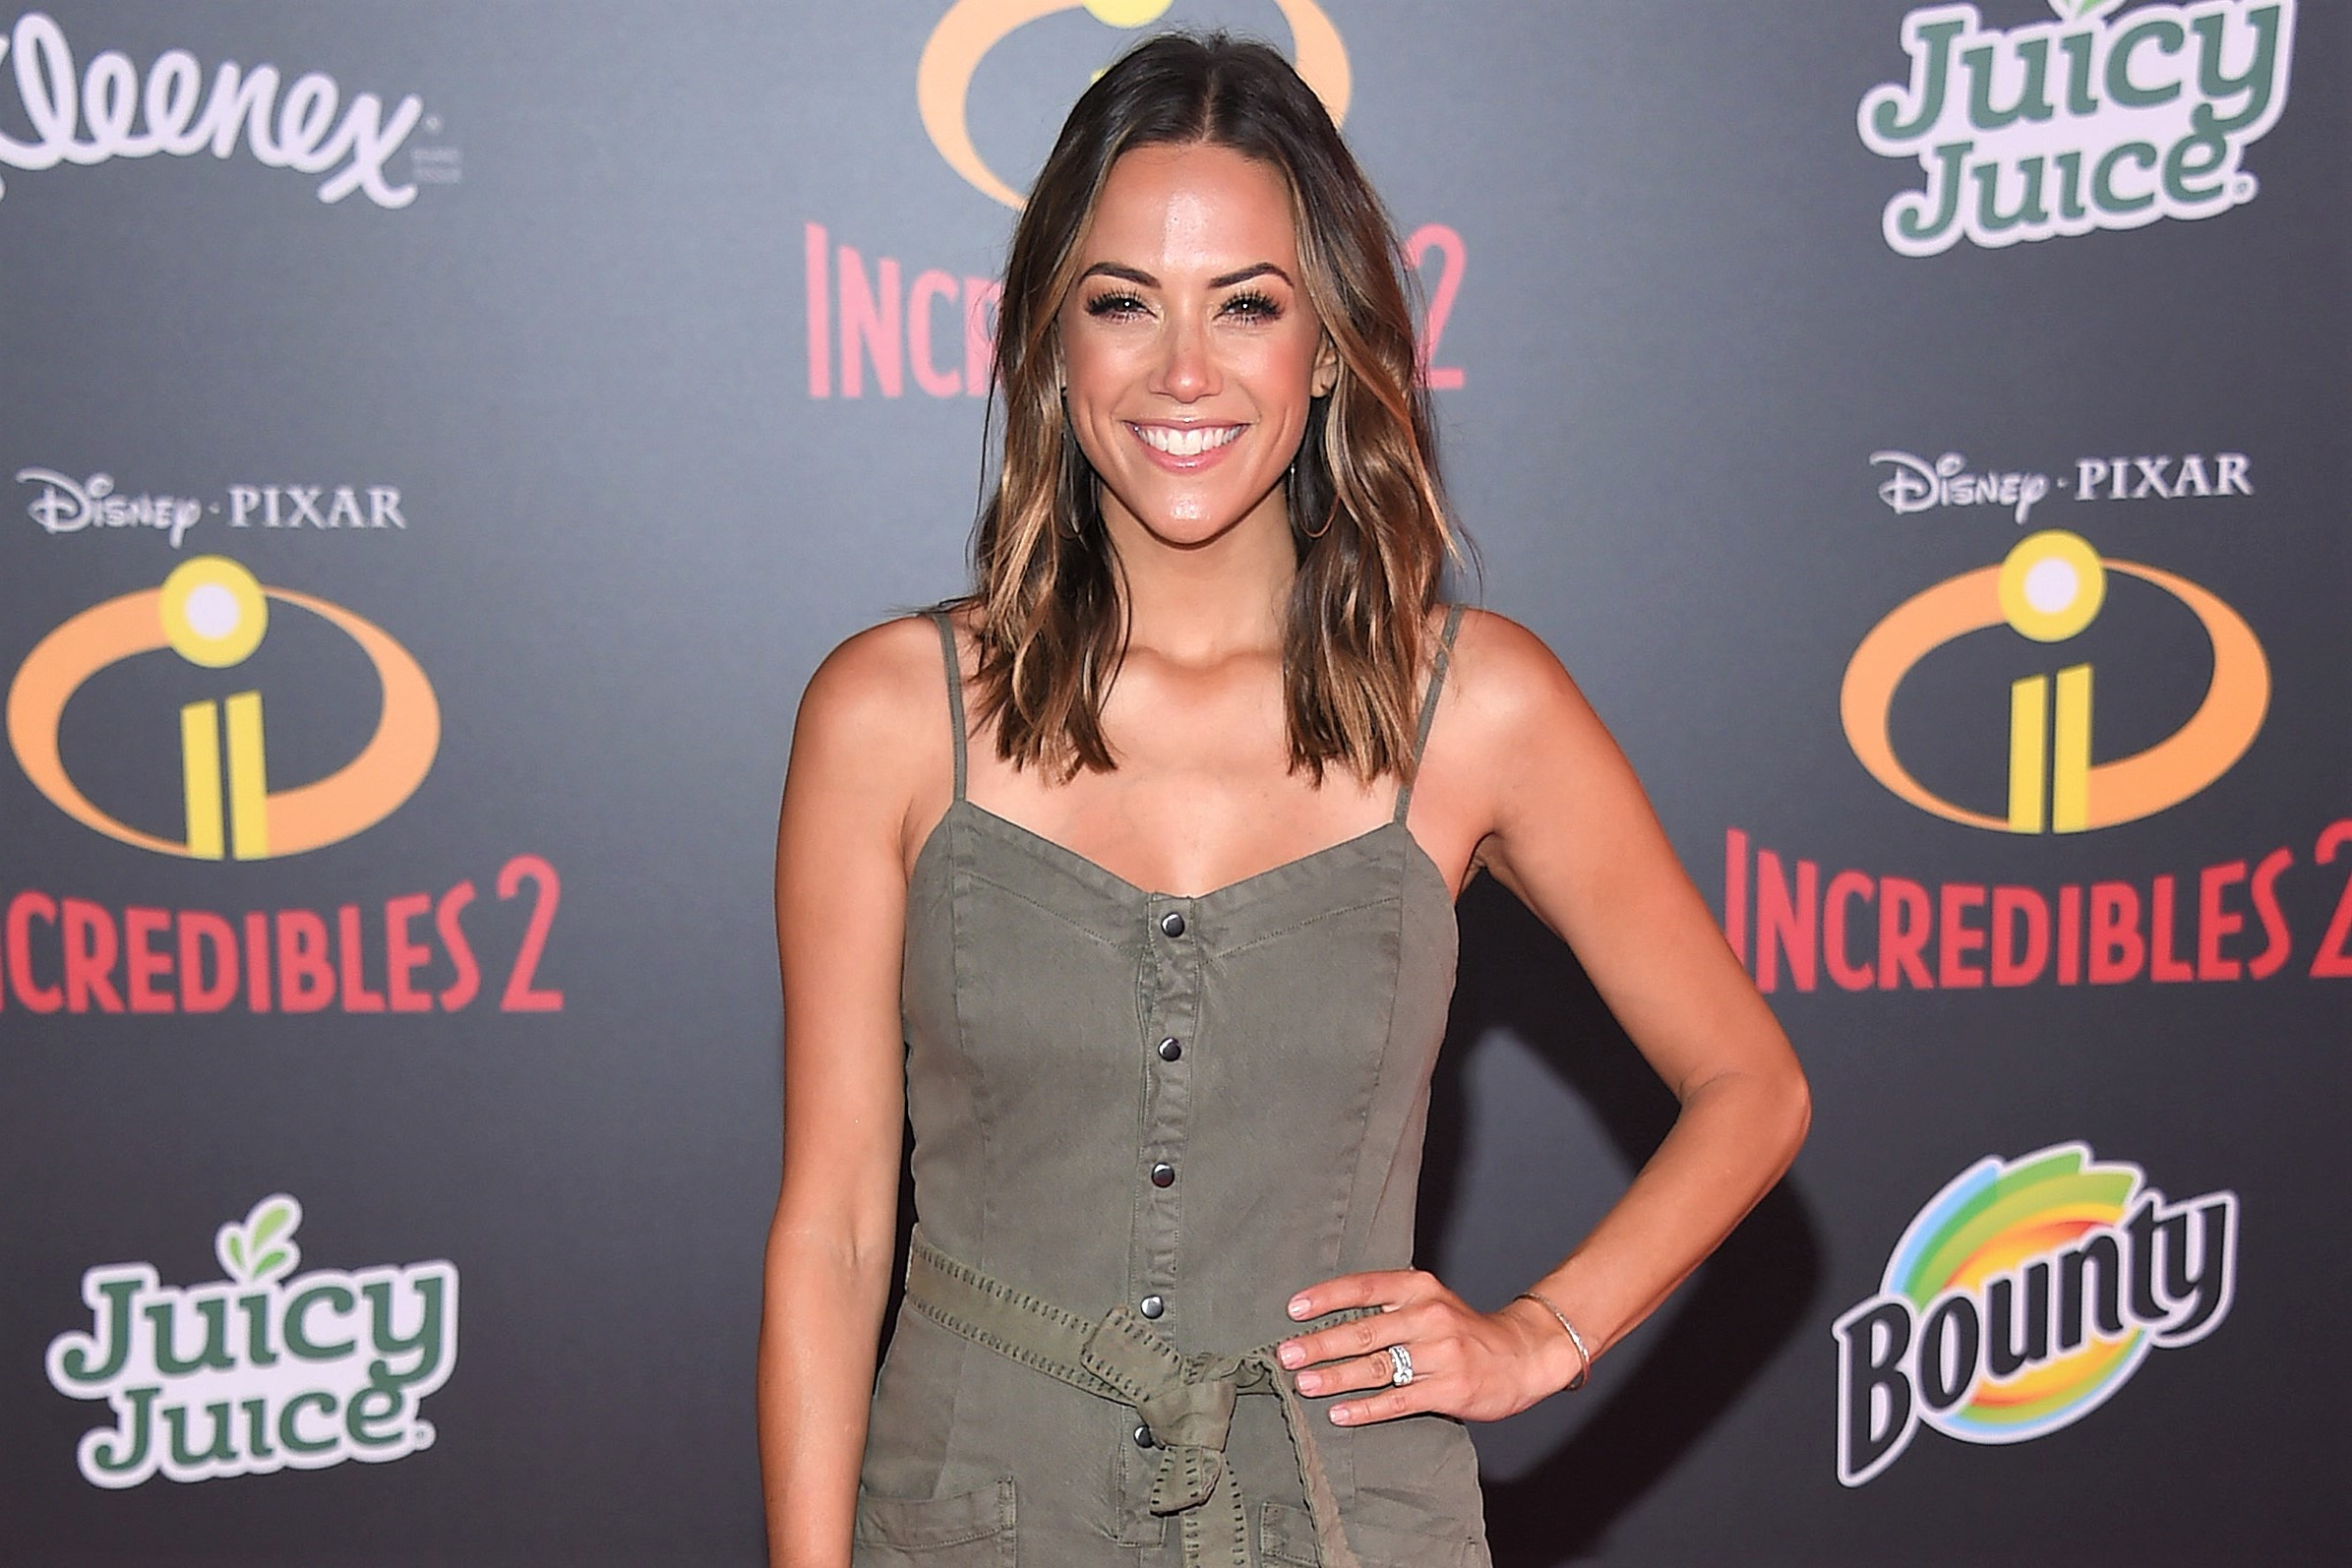 Jana Kramer Olive Green Romper Incredibles 2 Premiere Carpet